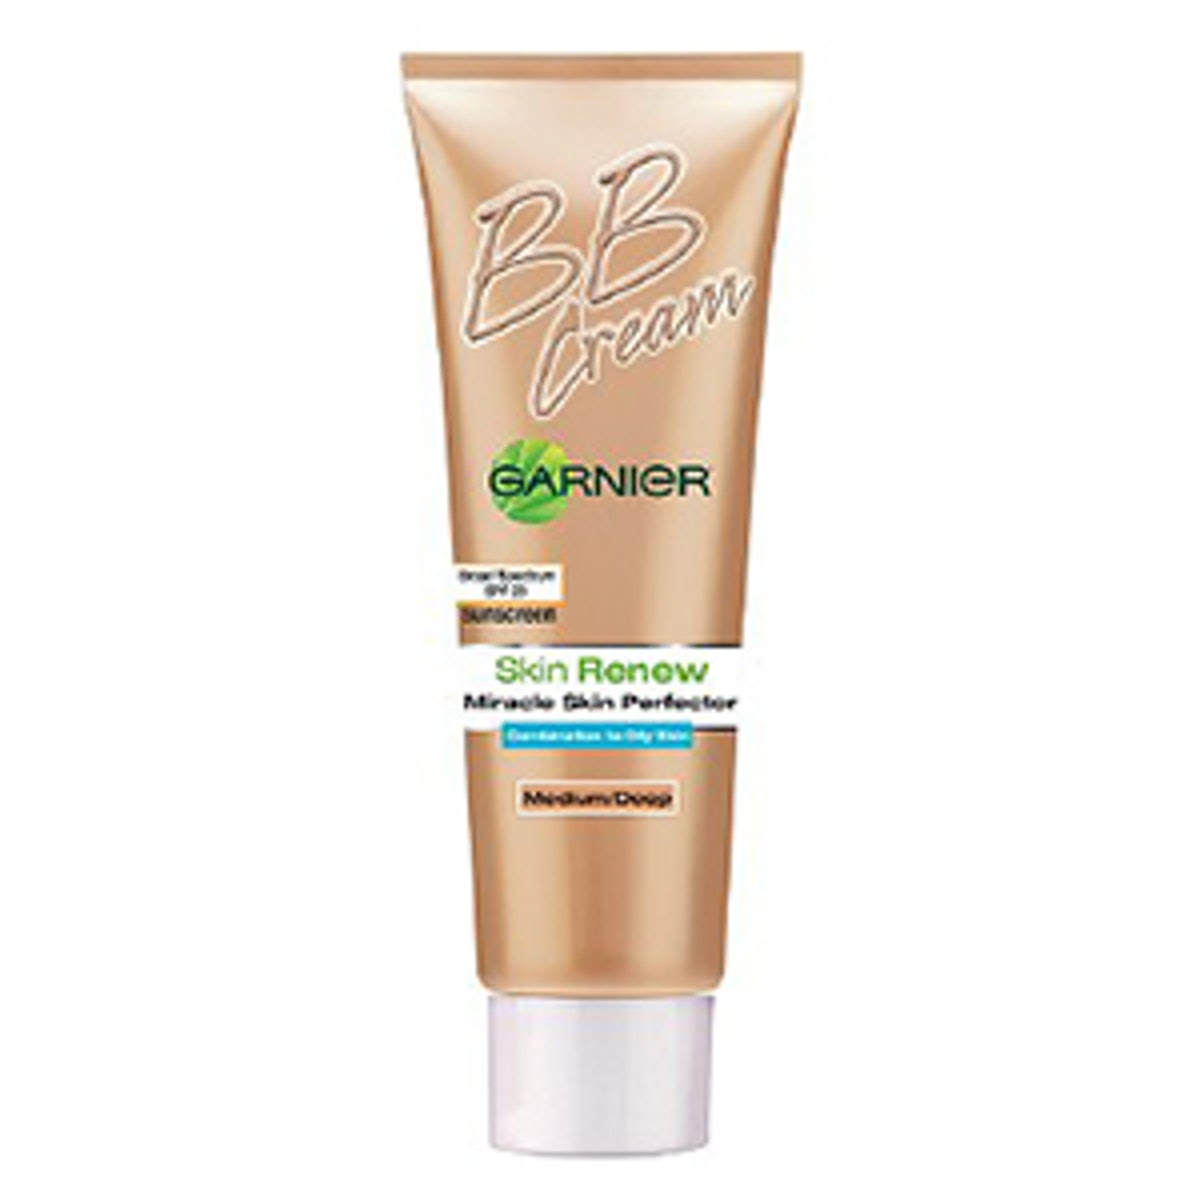 Miracle Skin Perfector BB Cream: Combination to Oily Skin